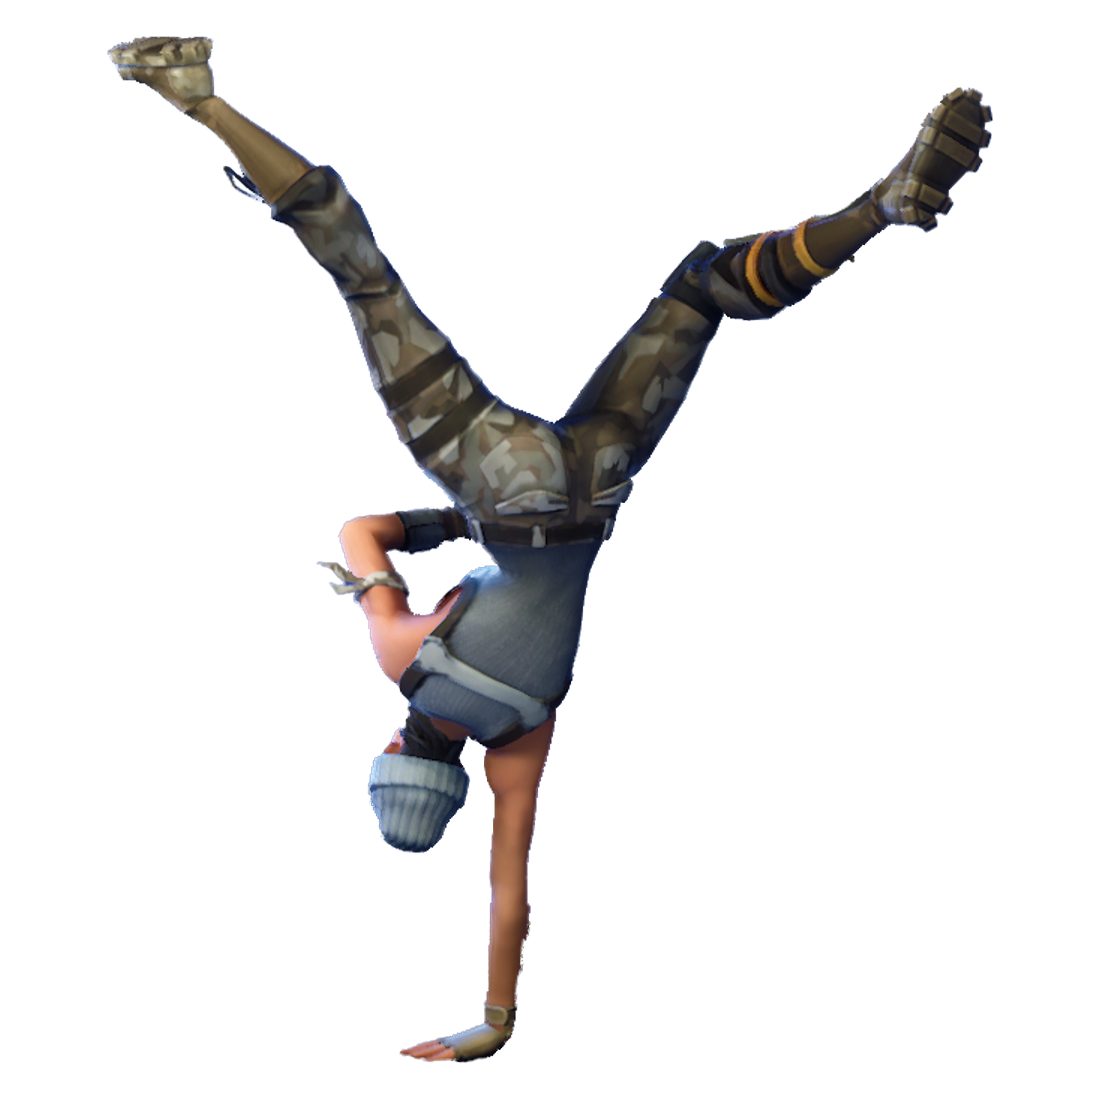 Breakin image purepng free. Fortnite dance png clip art royalty free stock